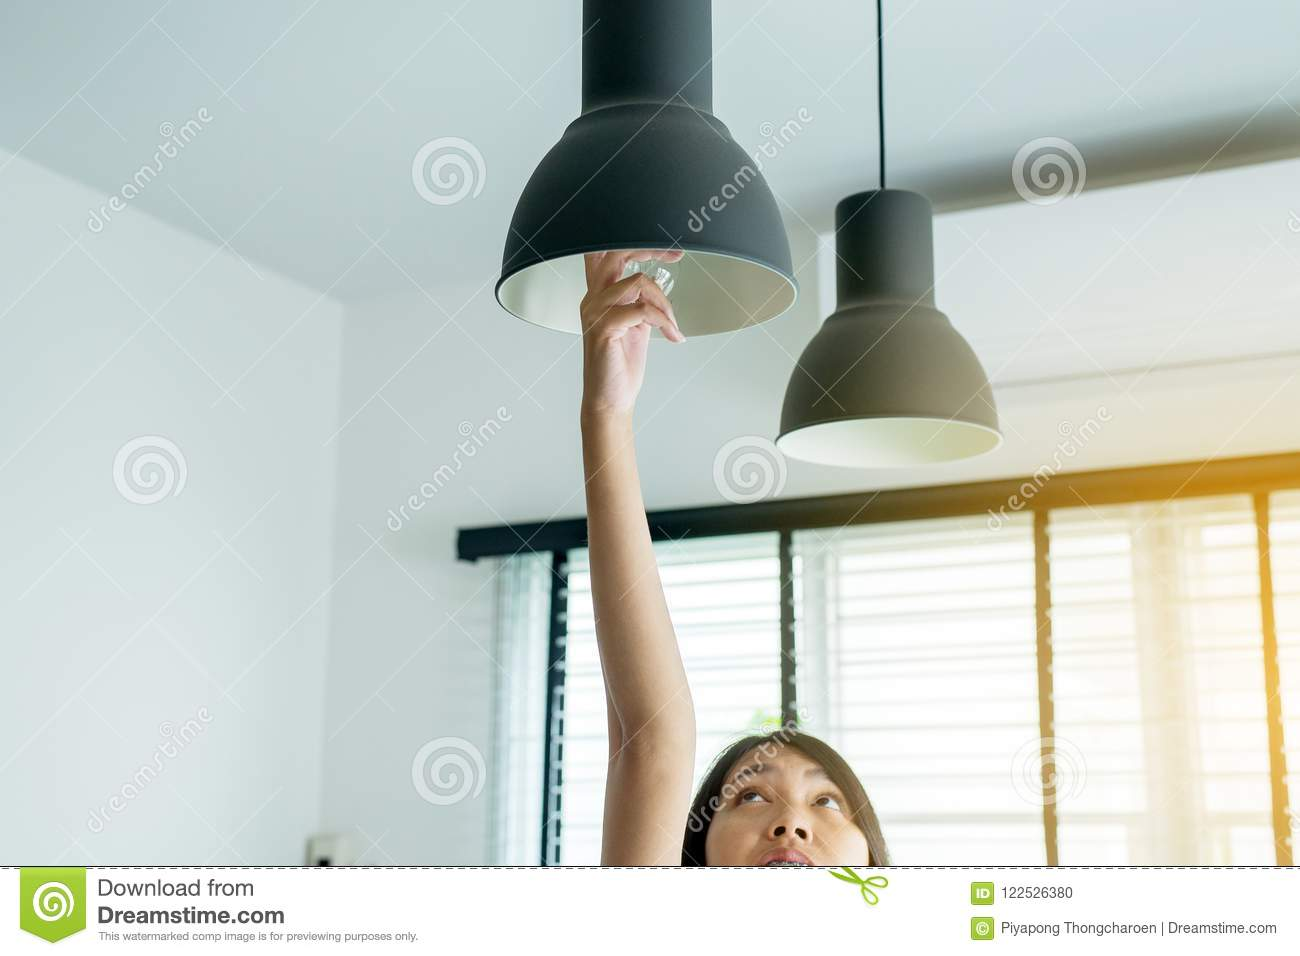 Hands Woman Changing With New LED Lamp Light Bulb Stock Photo ...